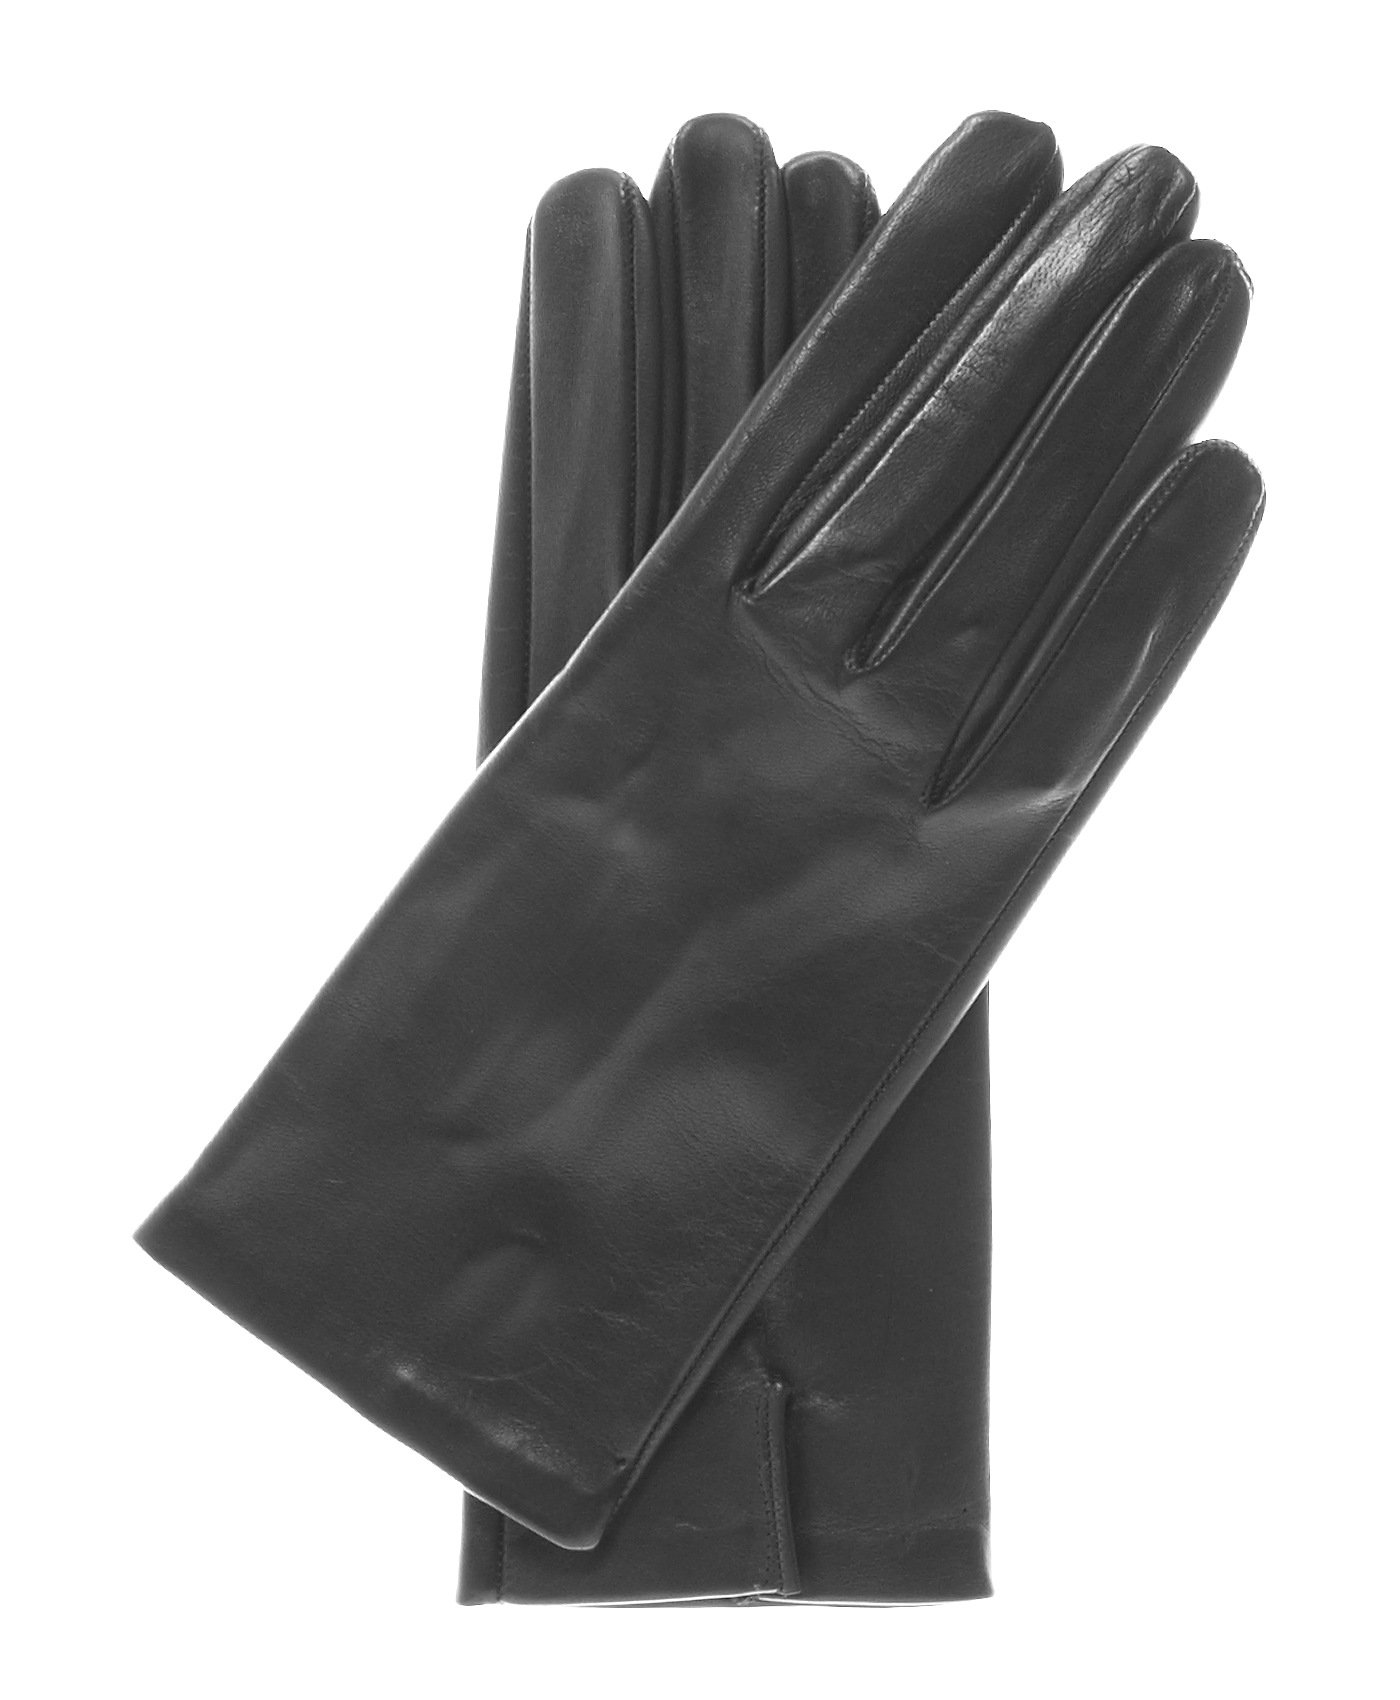 Fratelli Orsini Women's Touchscreen Italian Silk Lined Leather Gloves Size 8 1/2 Color Black